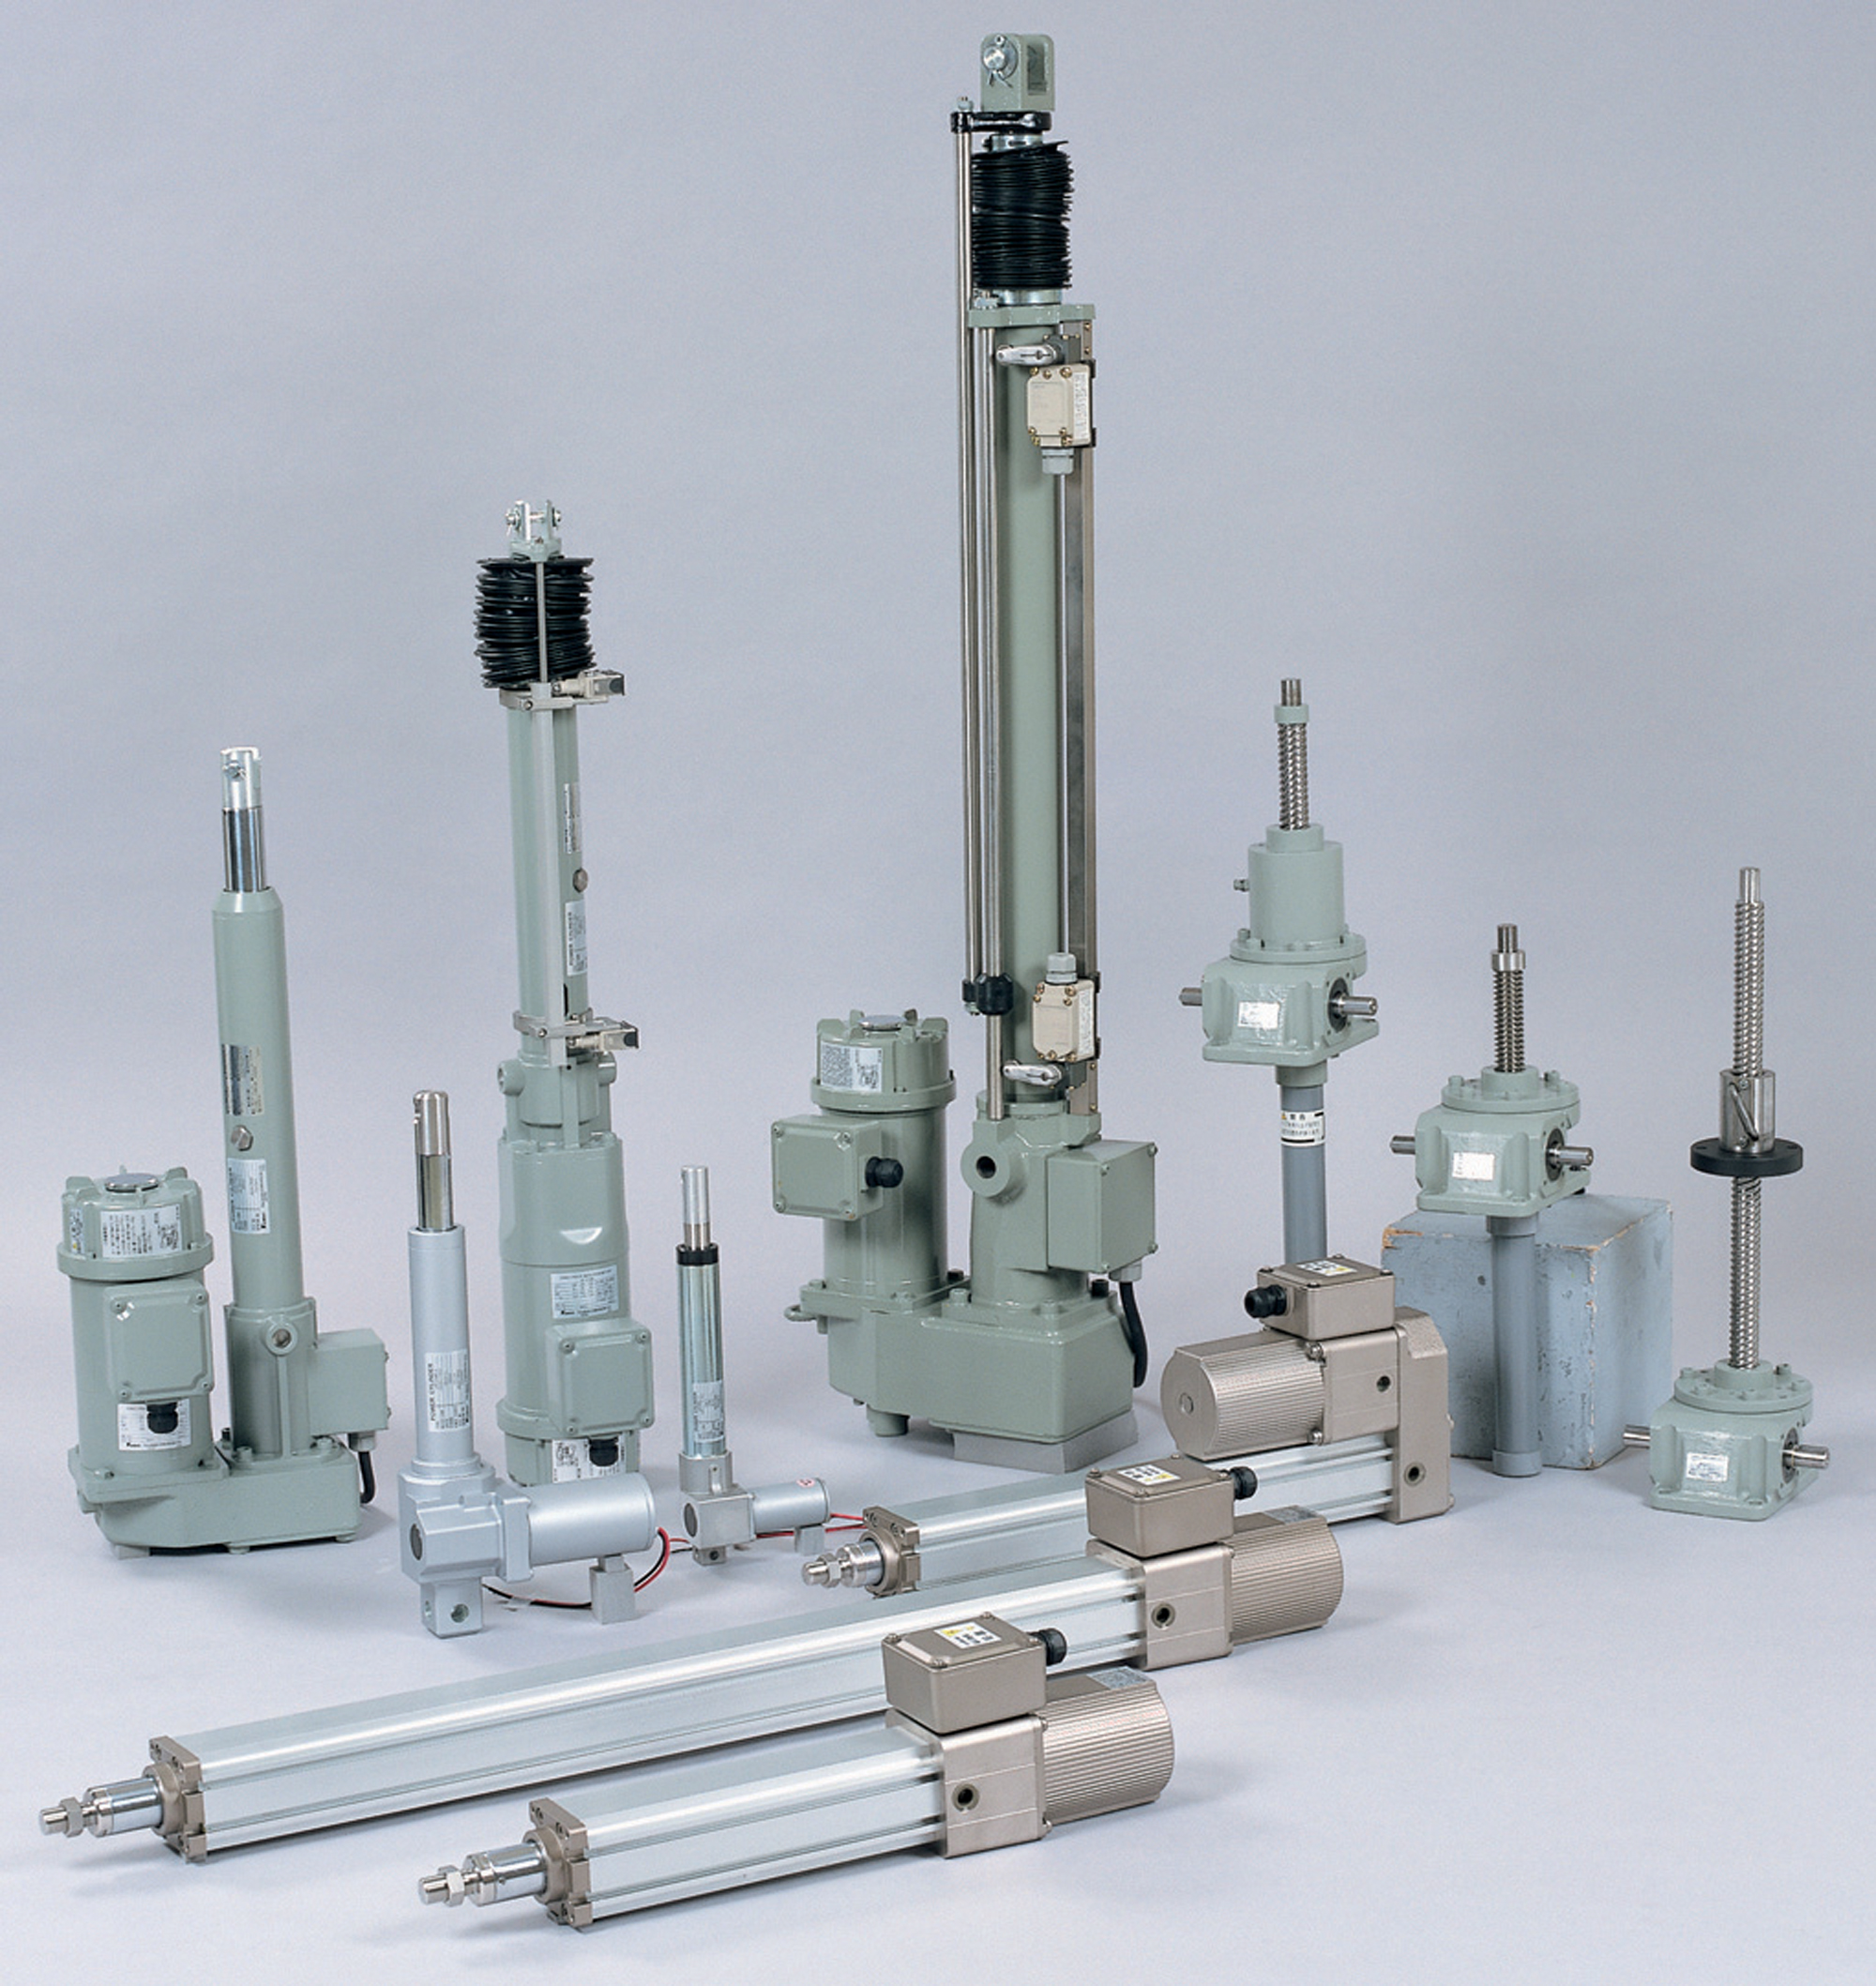 Quality drive components ensure long term reliability in